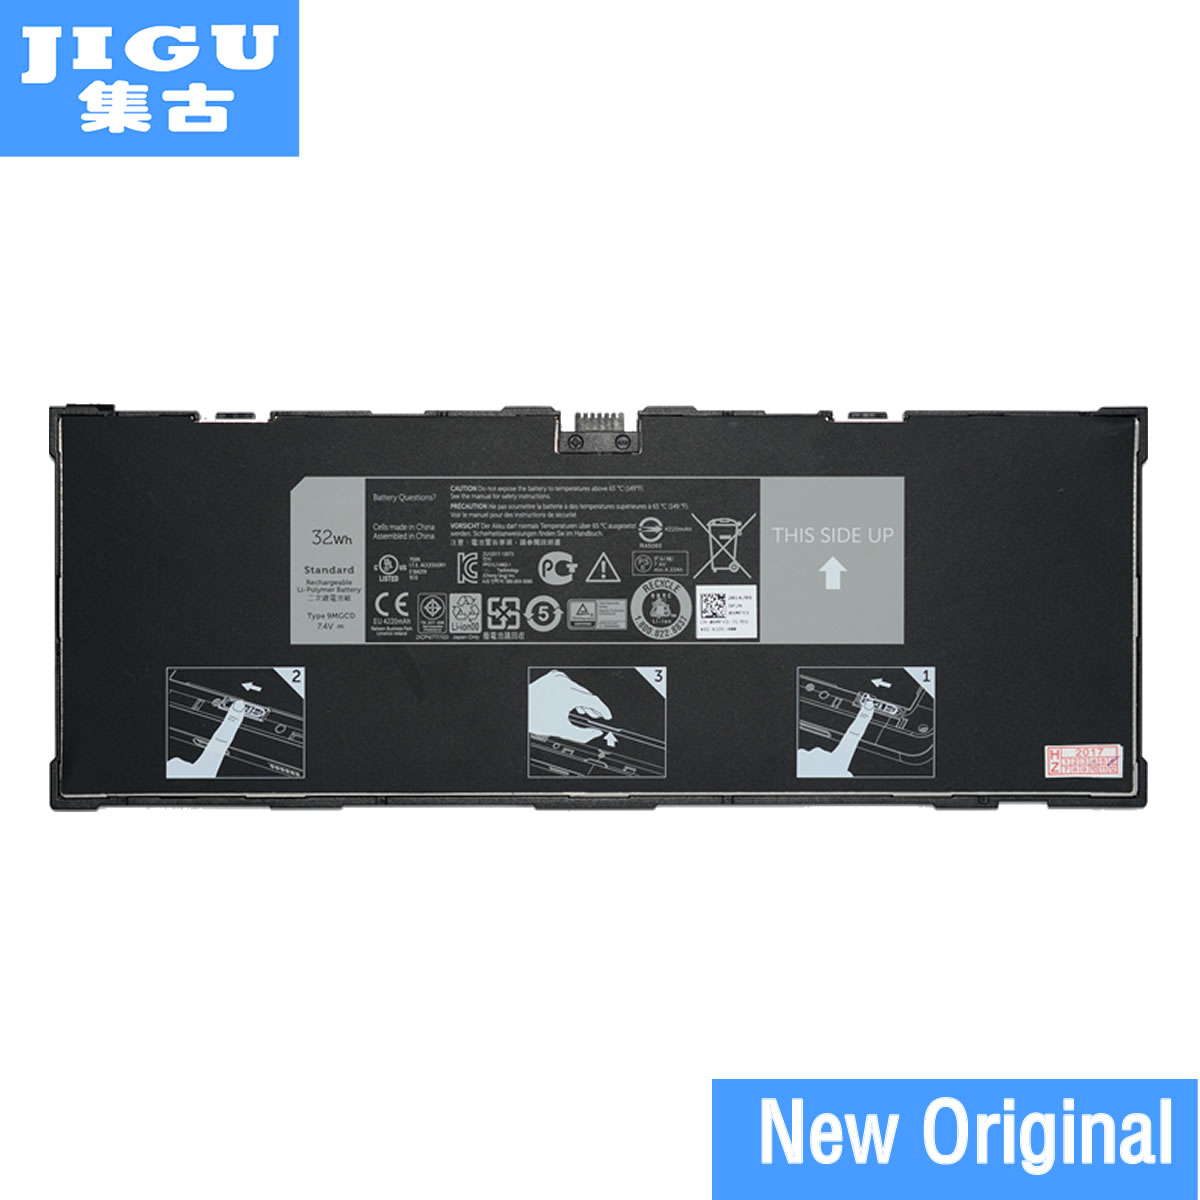 JIGU 100% New Original Tablet Battery 312-1453 XRXMG VYP88 451-BBIN XMFY3 For Dell Venue 11 Pro 5130 9MGCD 7.4V 32WHJIGU 100% New Original Tablet Battery 312-1453 XRXMG VYP88 451-BBIN XMFY3 For Dell Venue 11 Pro 5130 9MGCD 7.4V 32WH